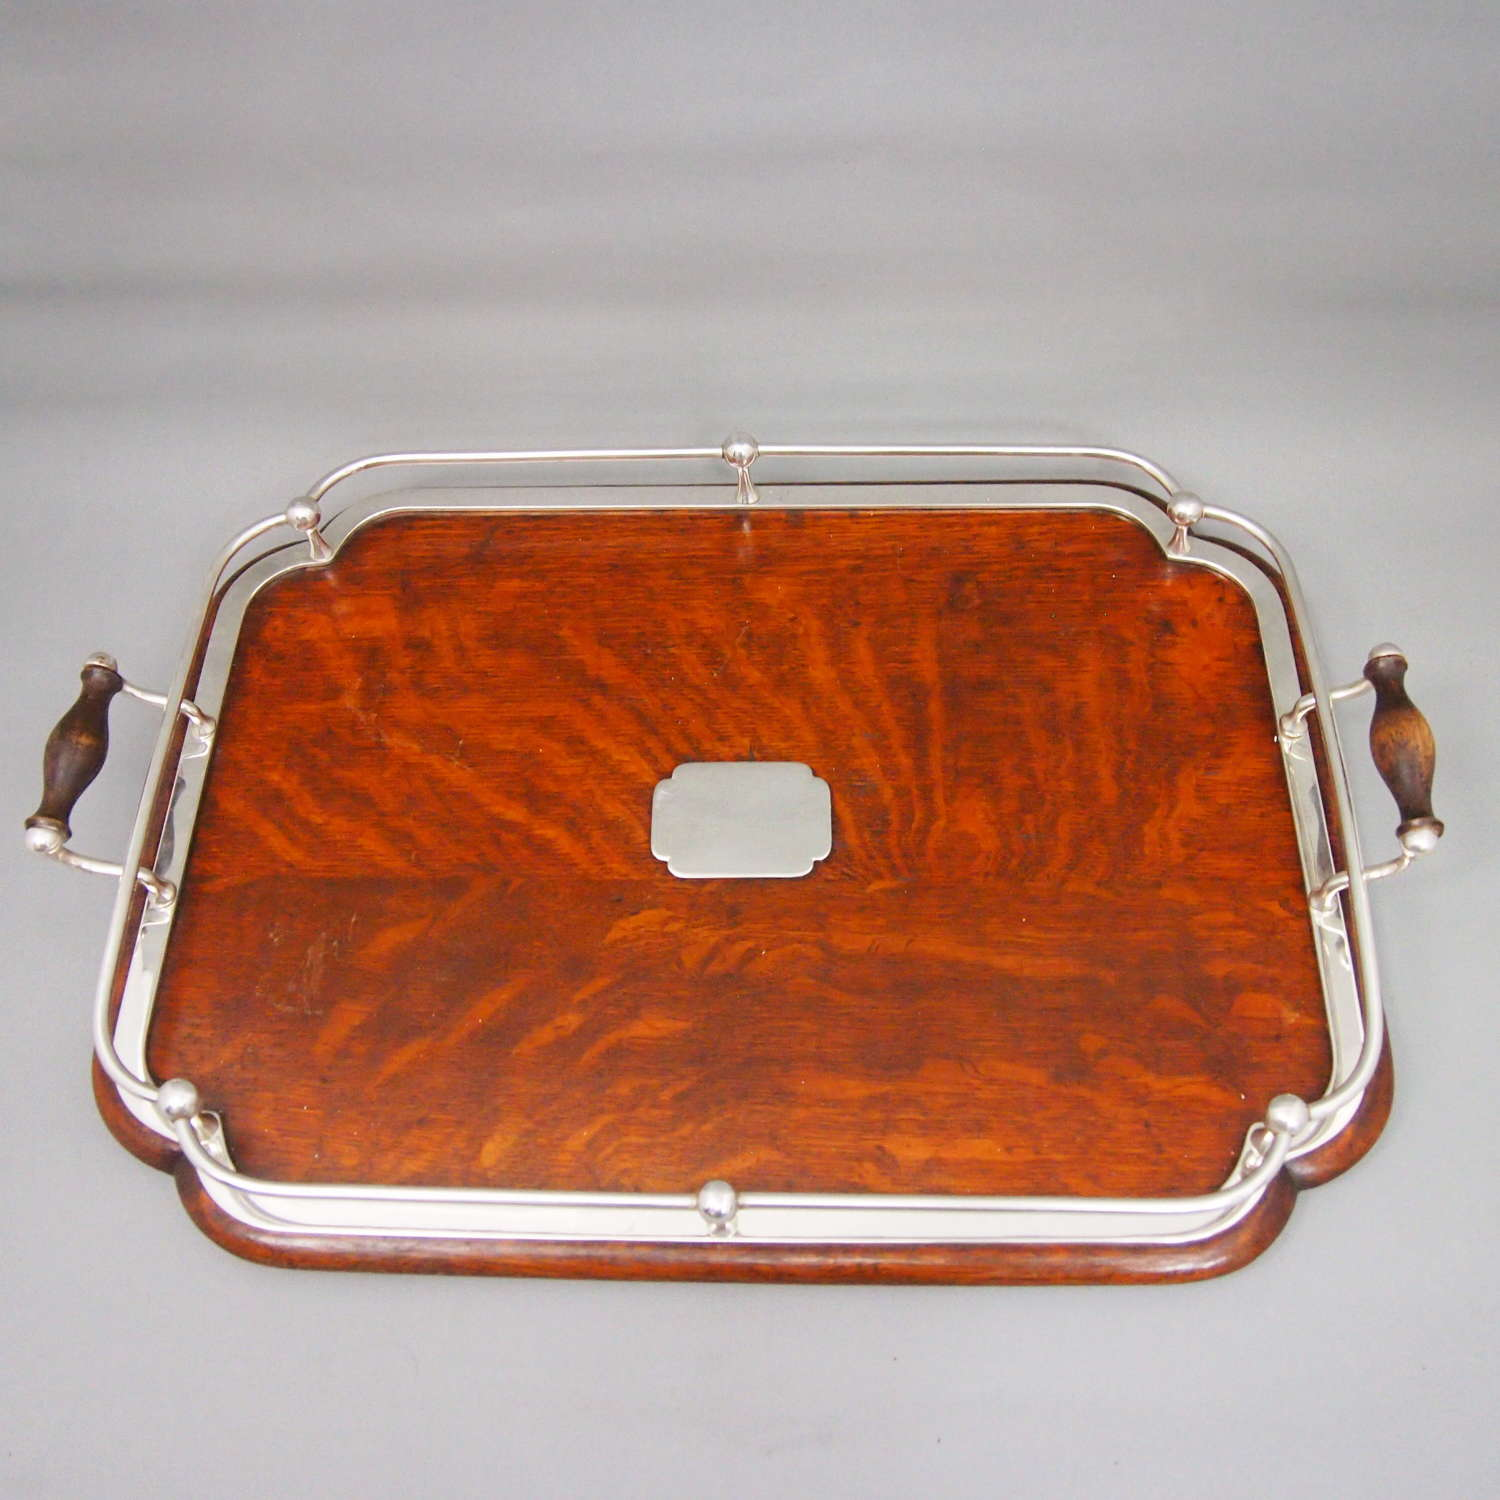 Antique oblong oak and silver plate ships style gallery tray.W8626